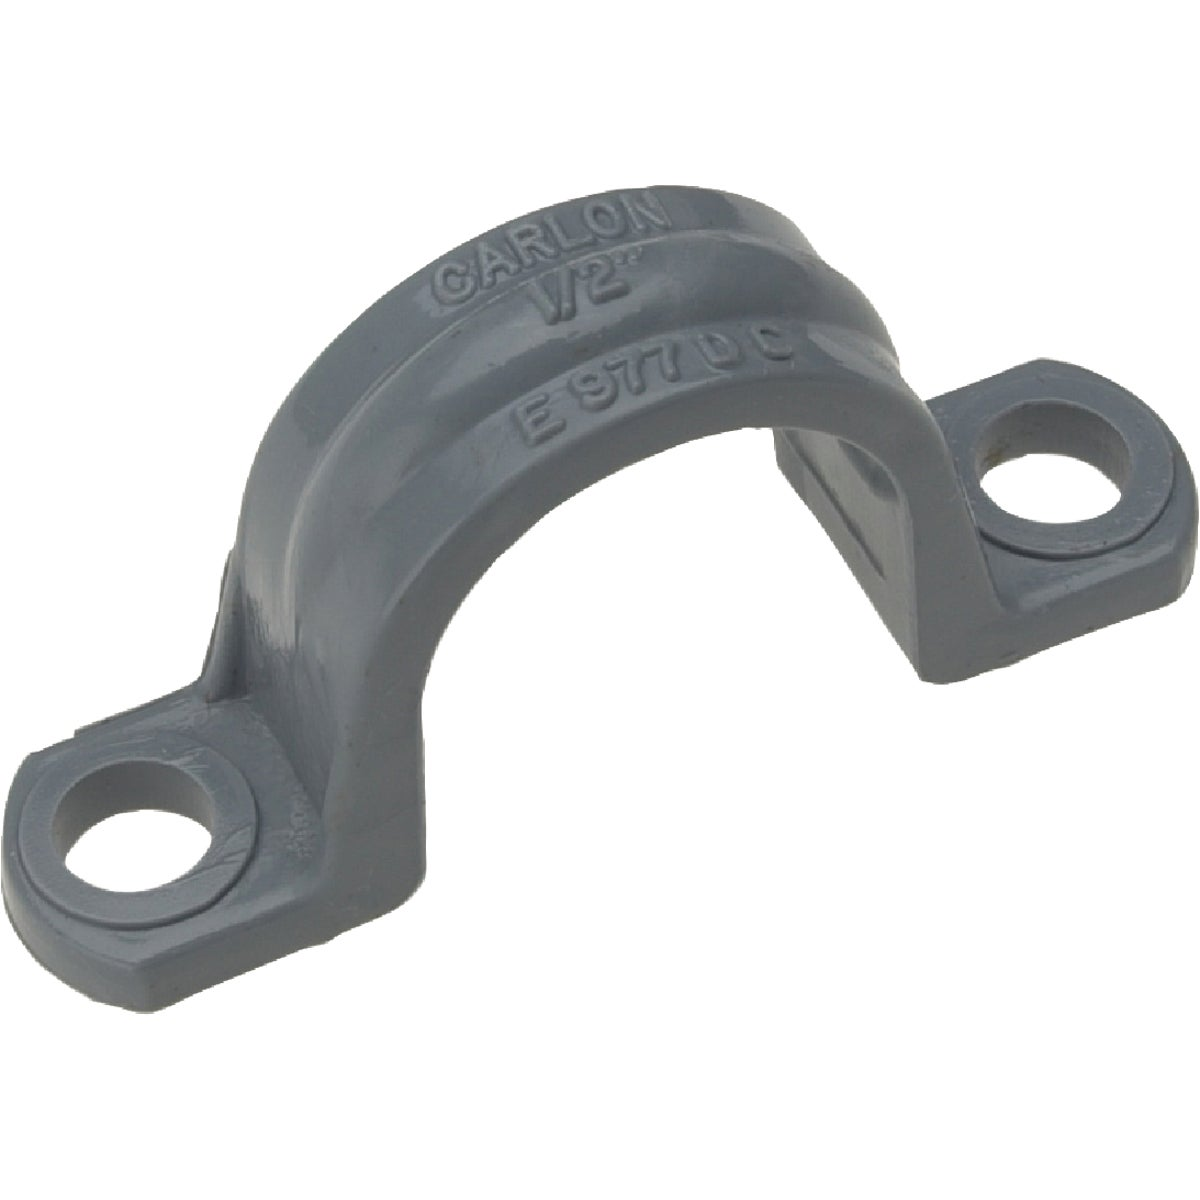 "5 PK 1"" PVC STRAP - E977FCCTN by Thomas & Betts"